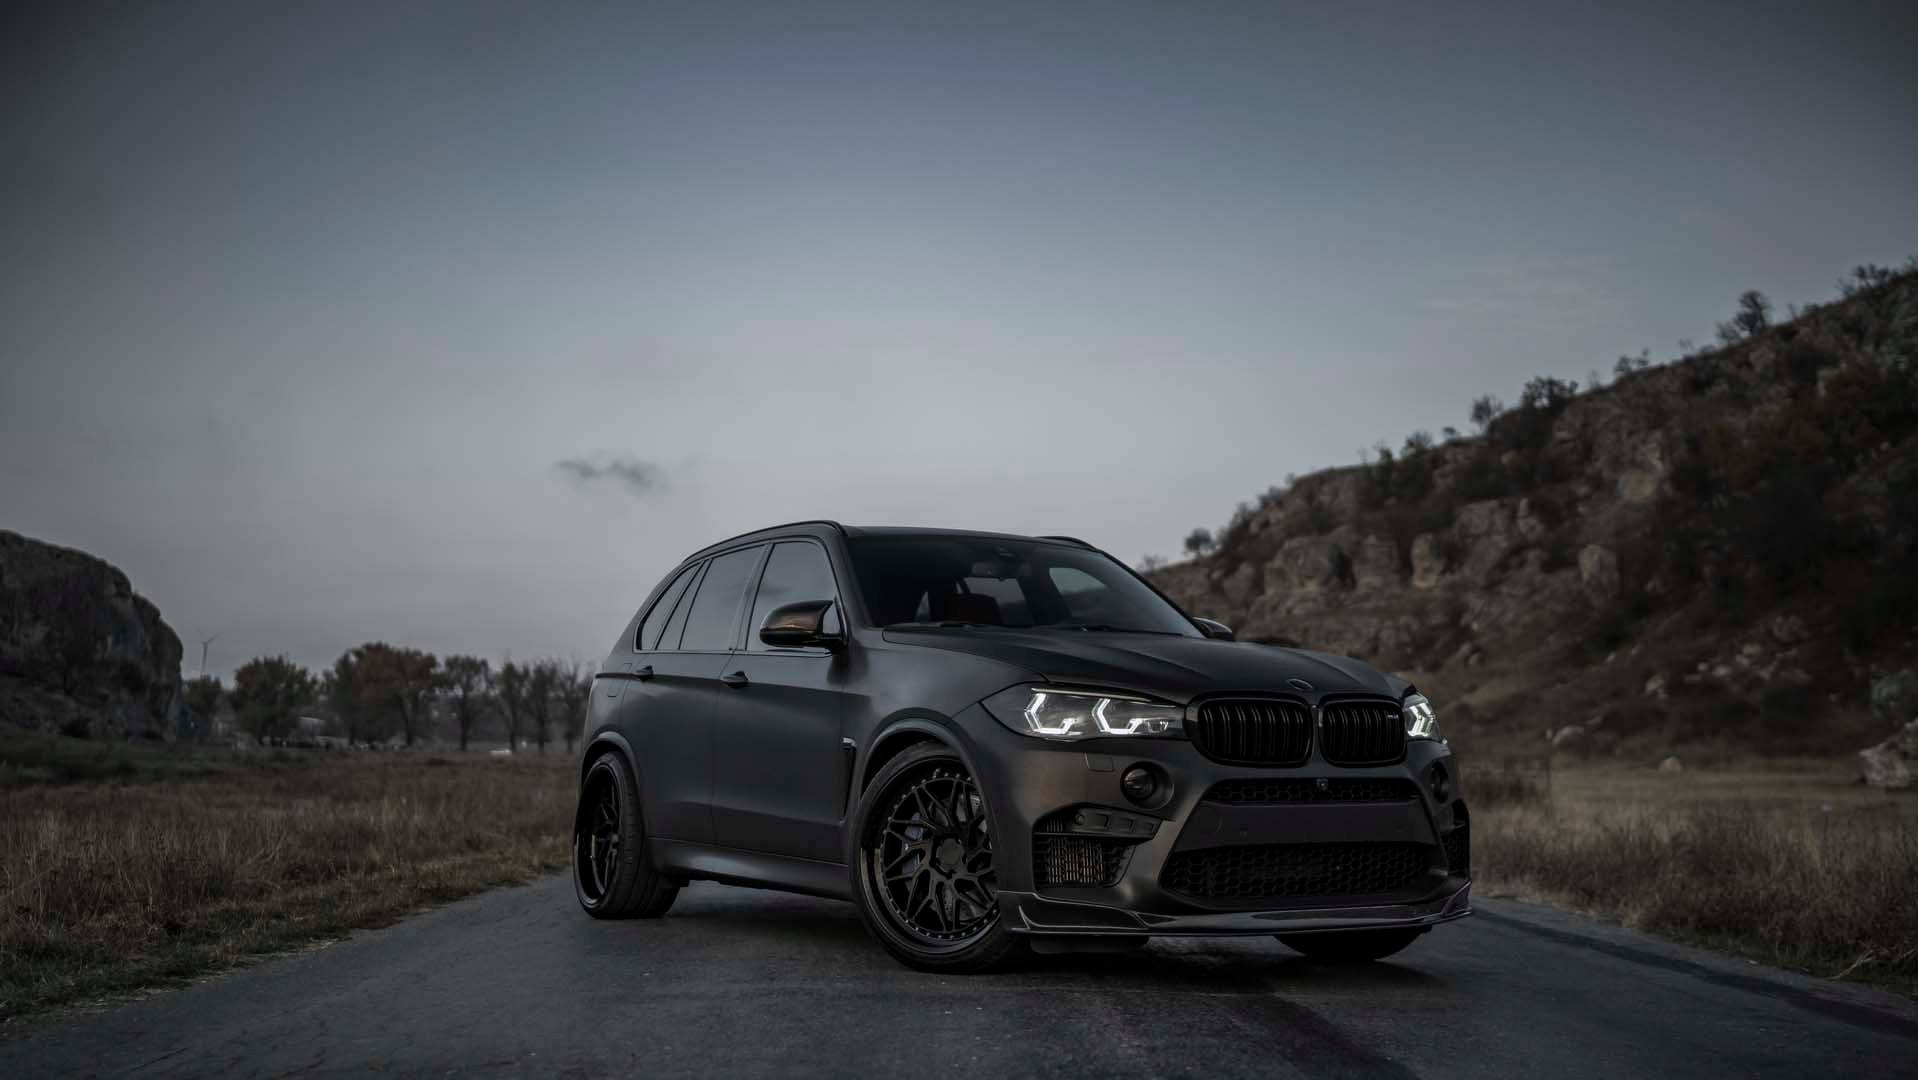 Murdered Out Bmw X5 M With 750 Hp Is Mafia Approved